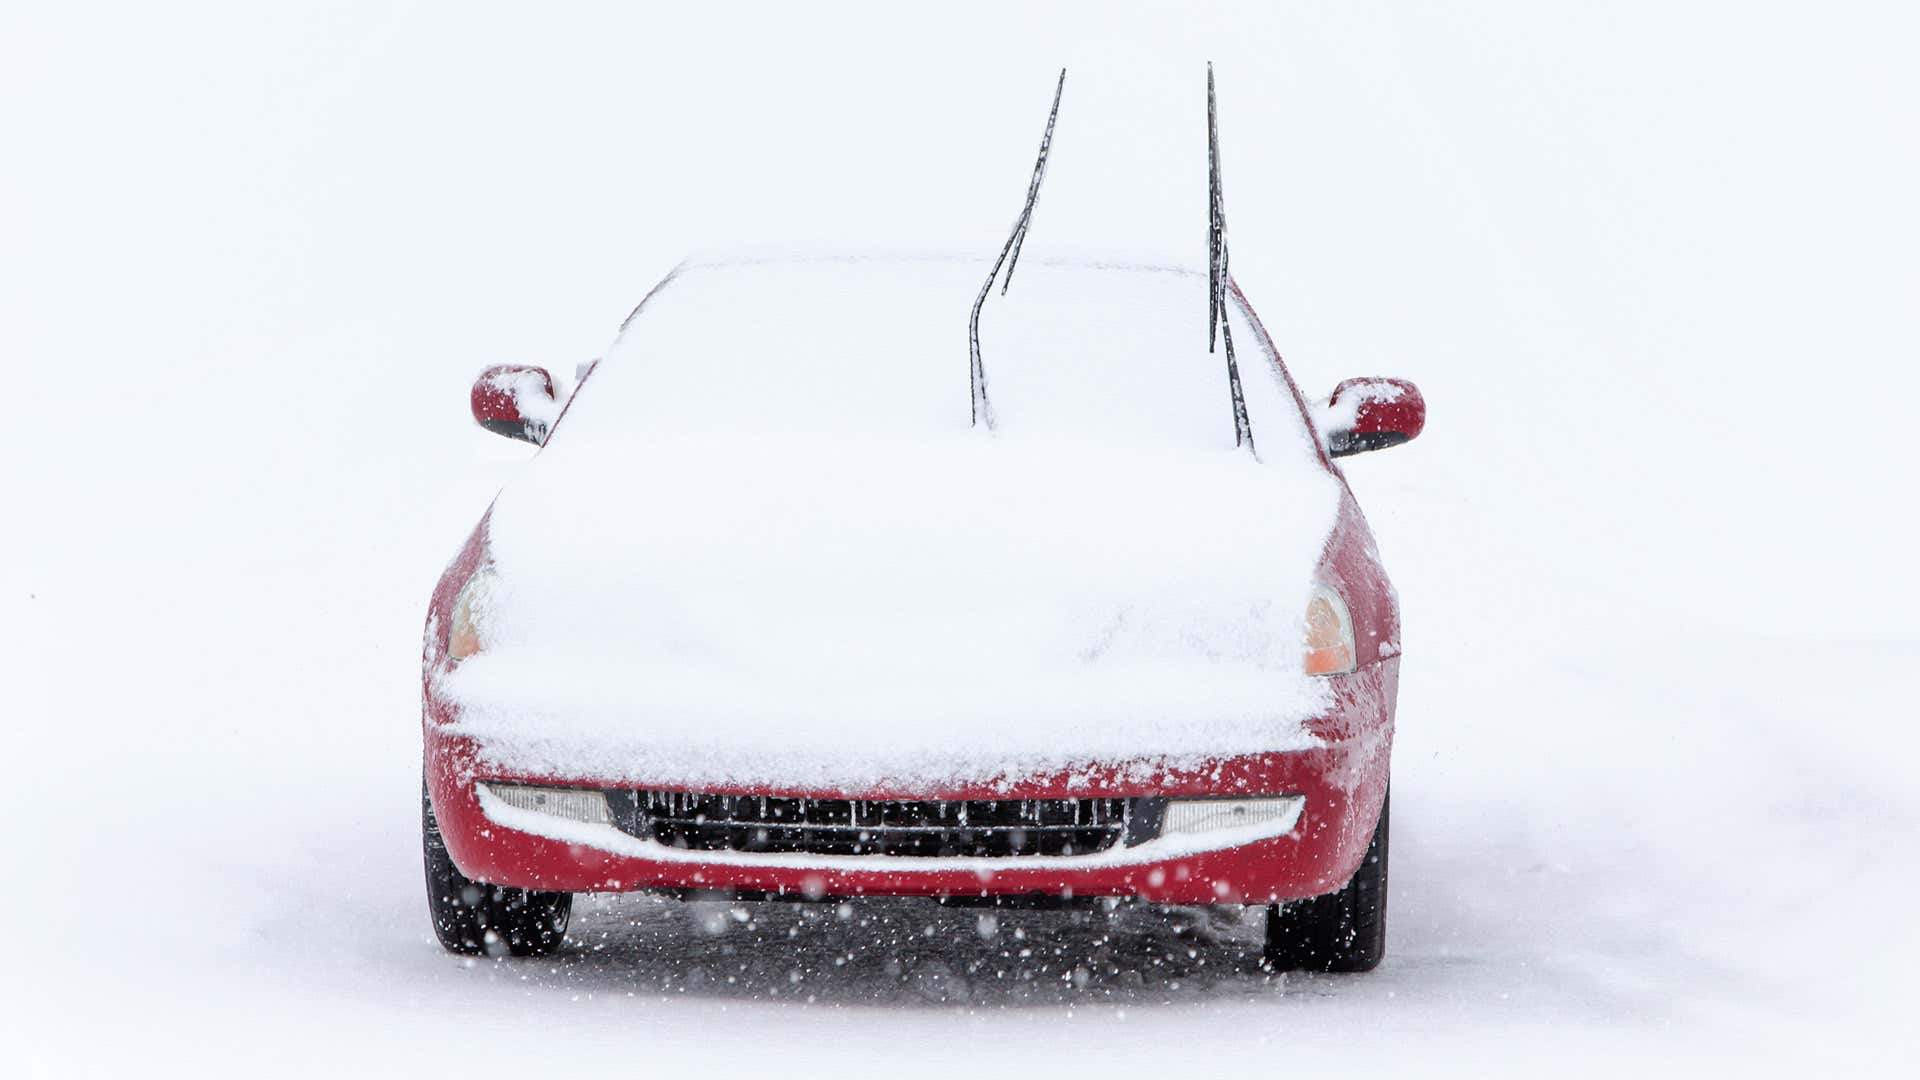 Stand windshield wipers up when snow is expected.